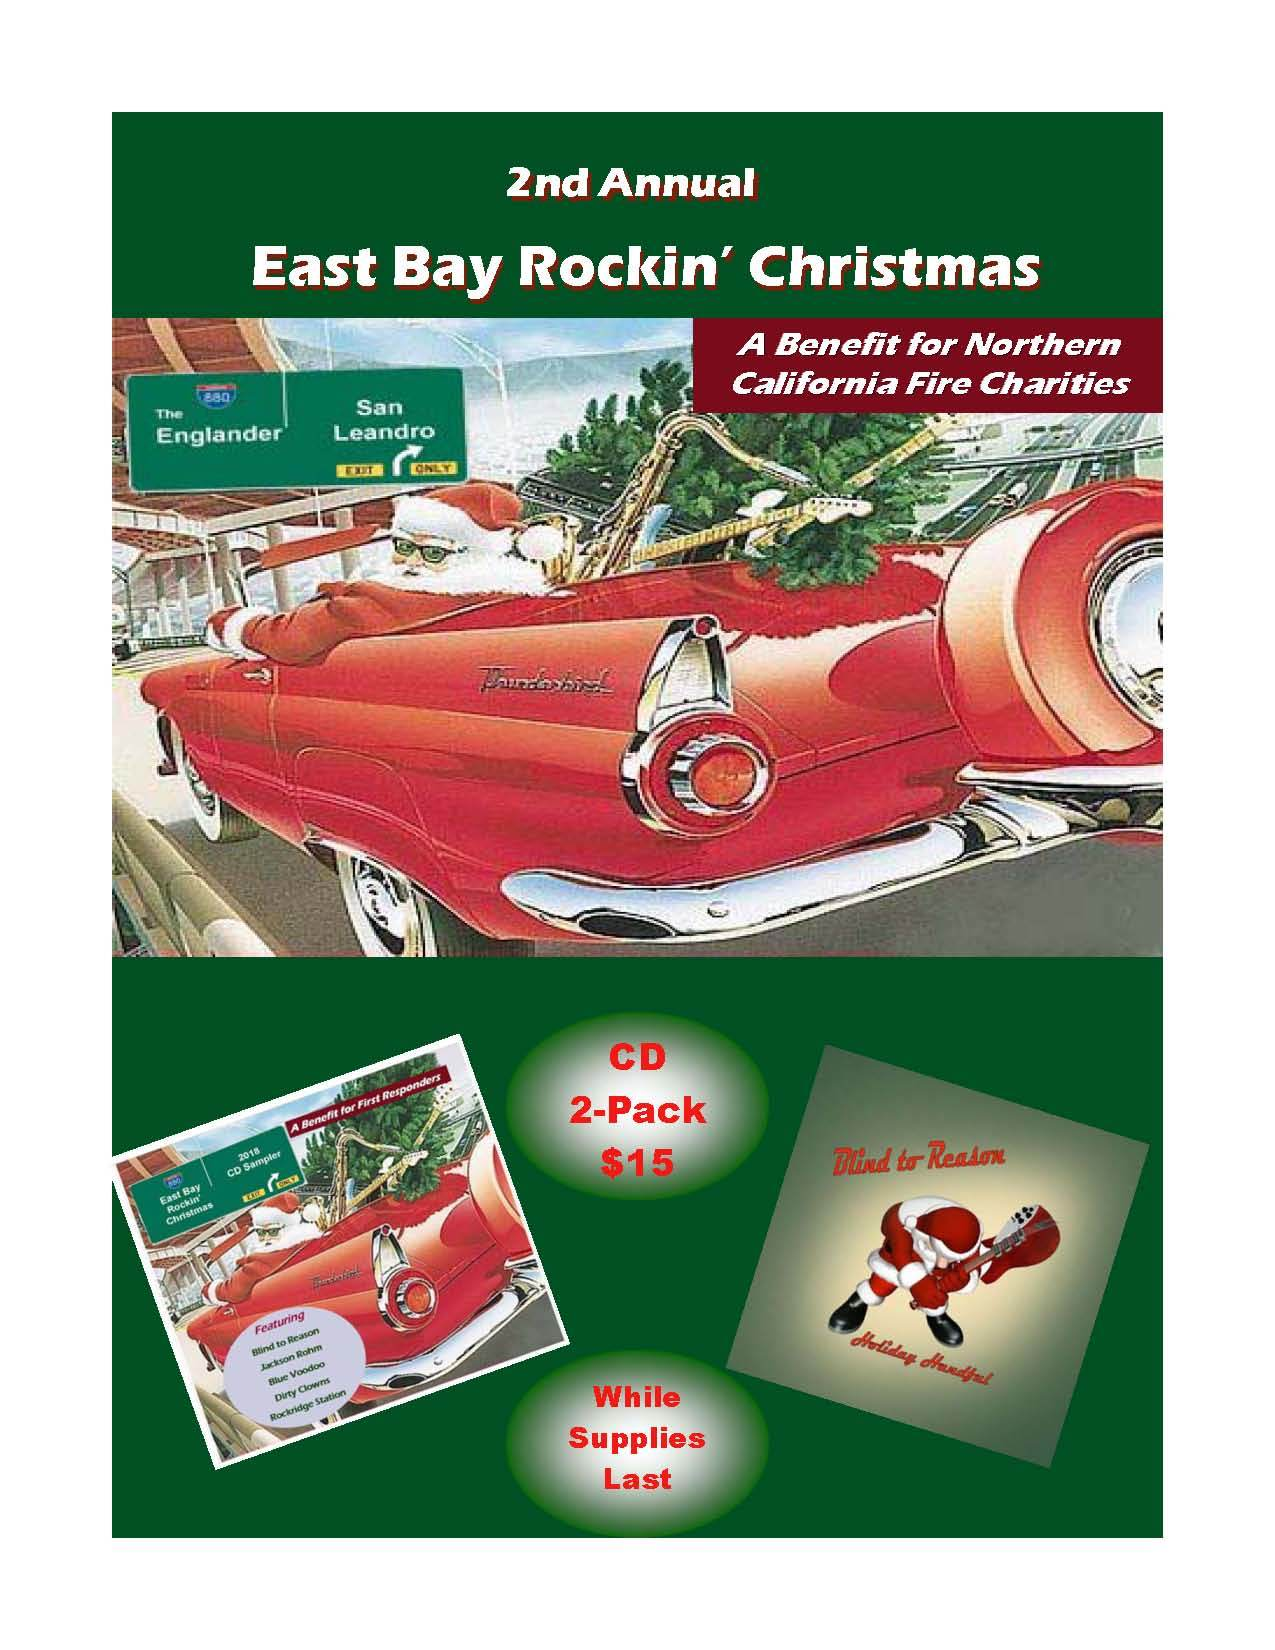 East Bay Rockin Christmas 2018 CD 2-Pack 00001